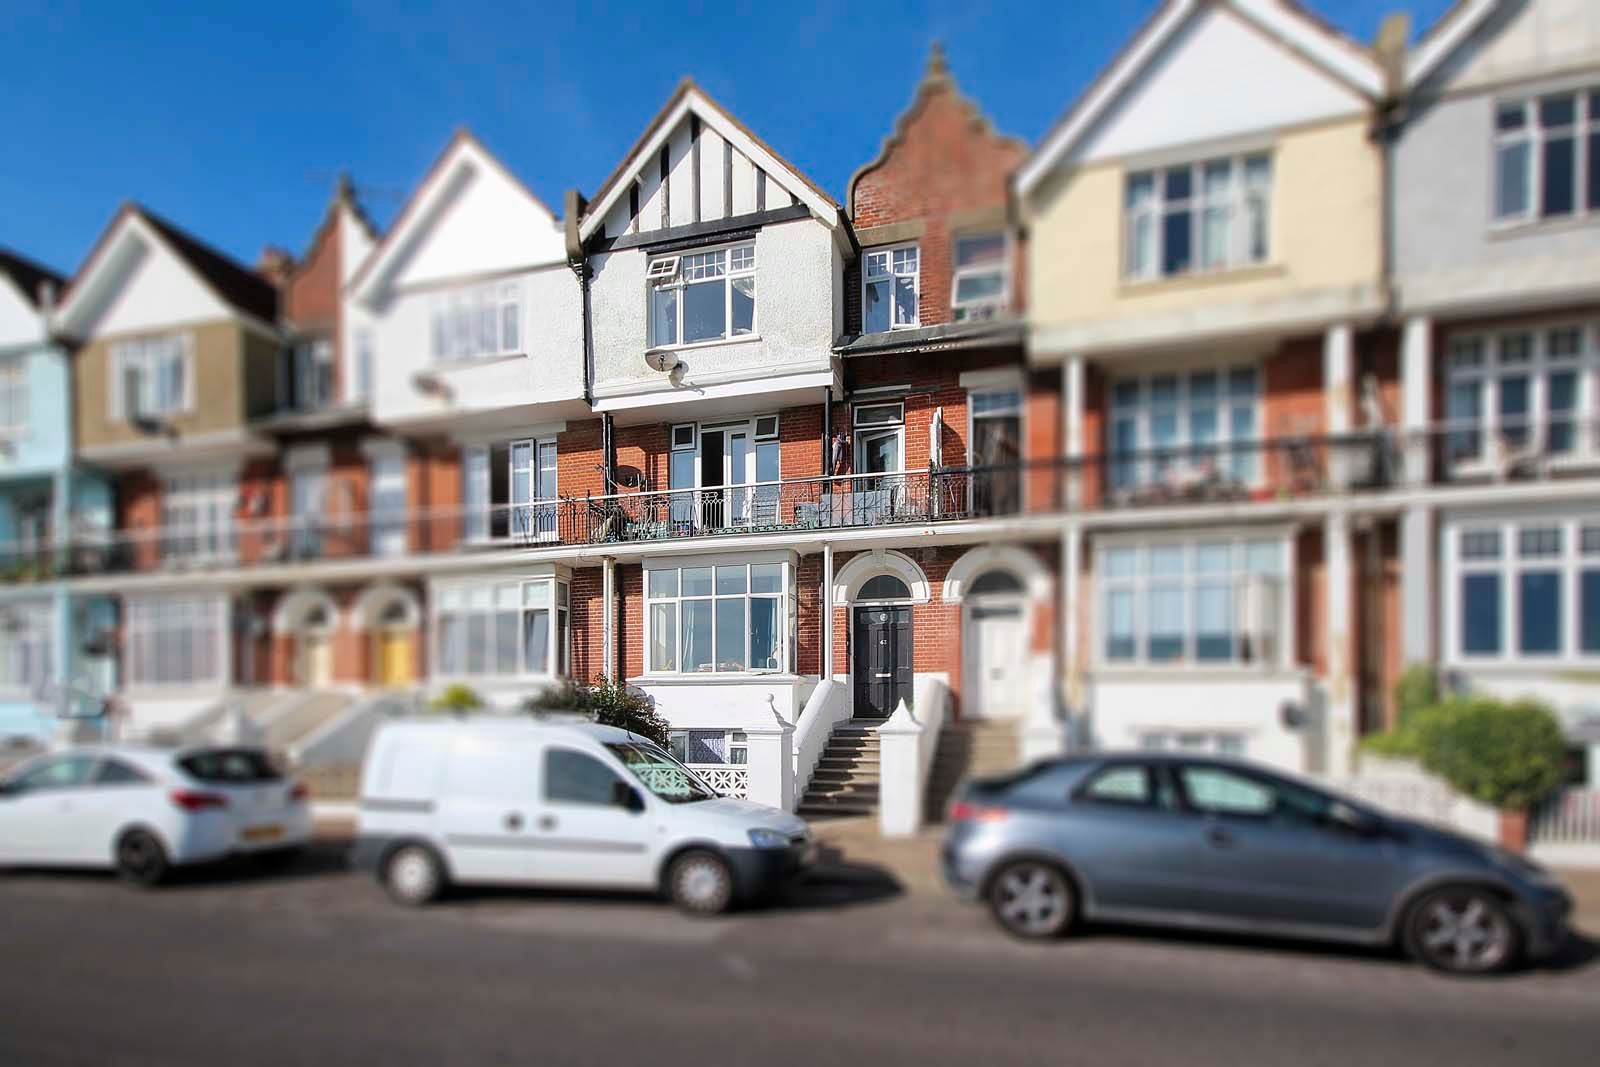 1 bed Apartment to rent in Littlehampton - Front aspect (Property Image 0)